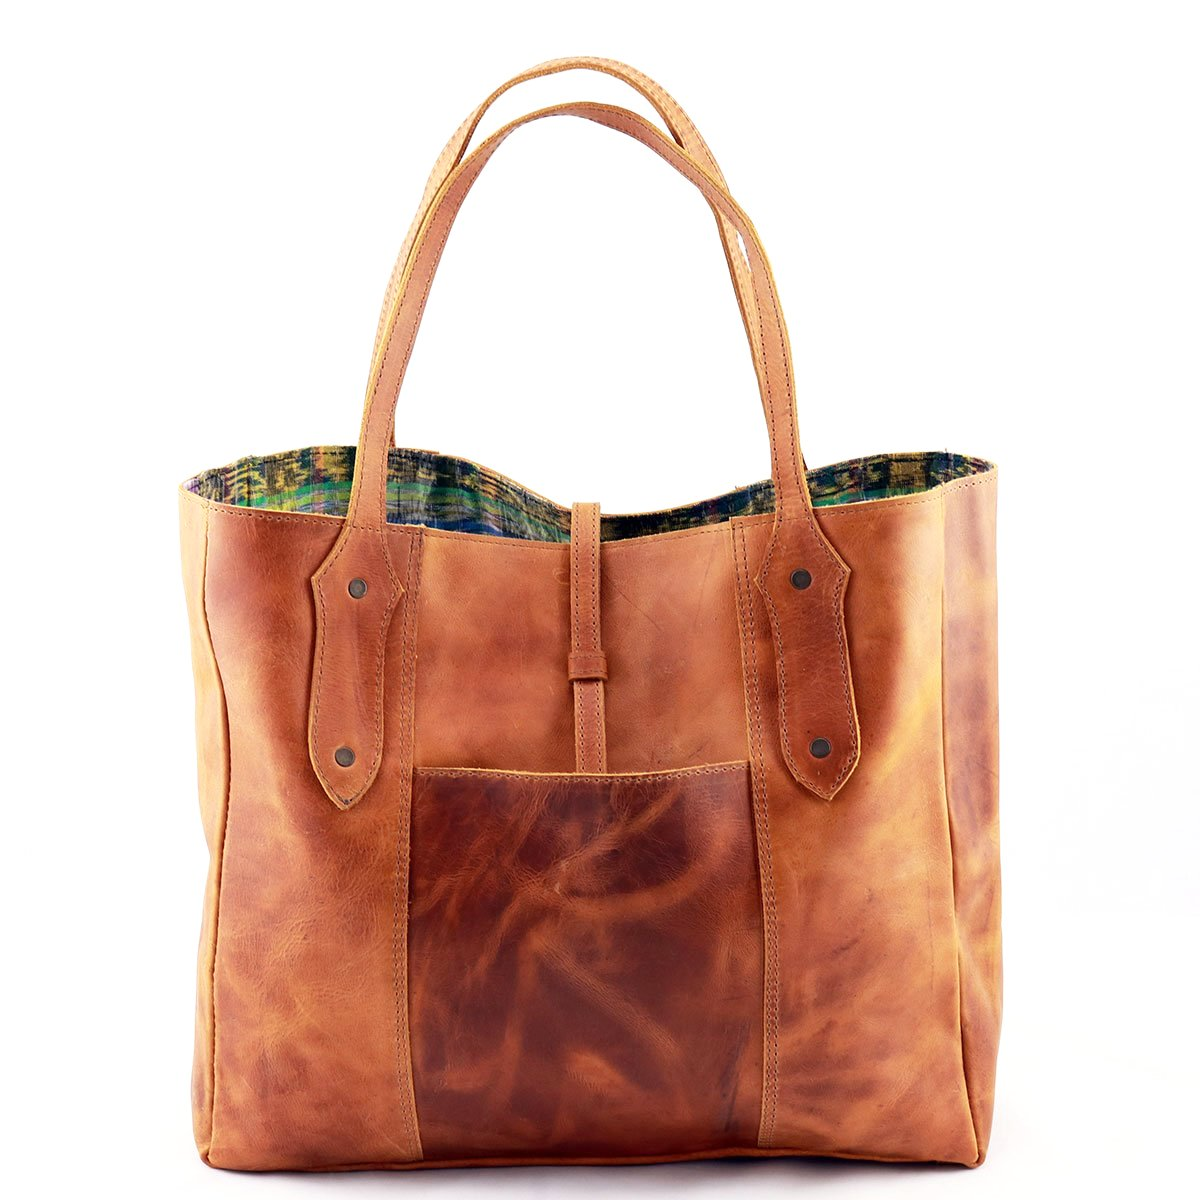 Antigua Mini Leather Tote - etnico culture